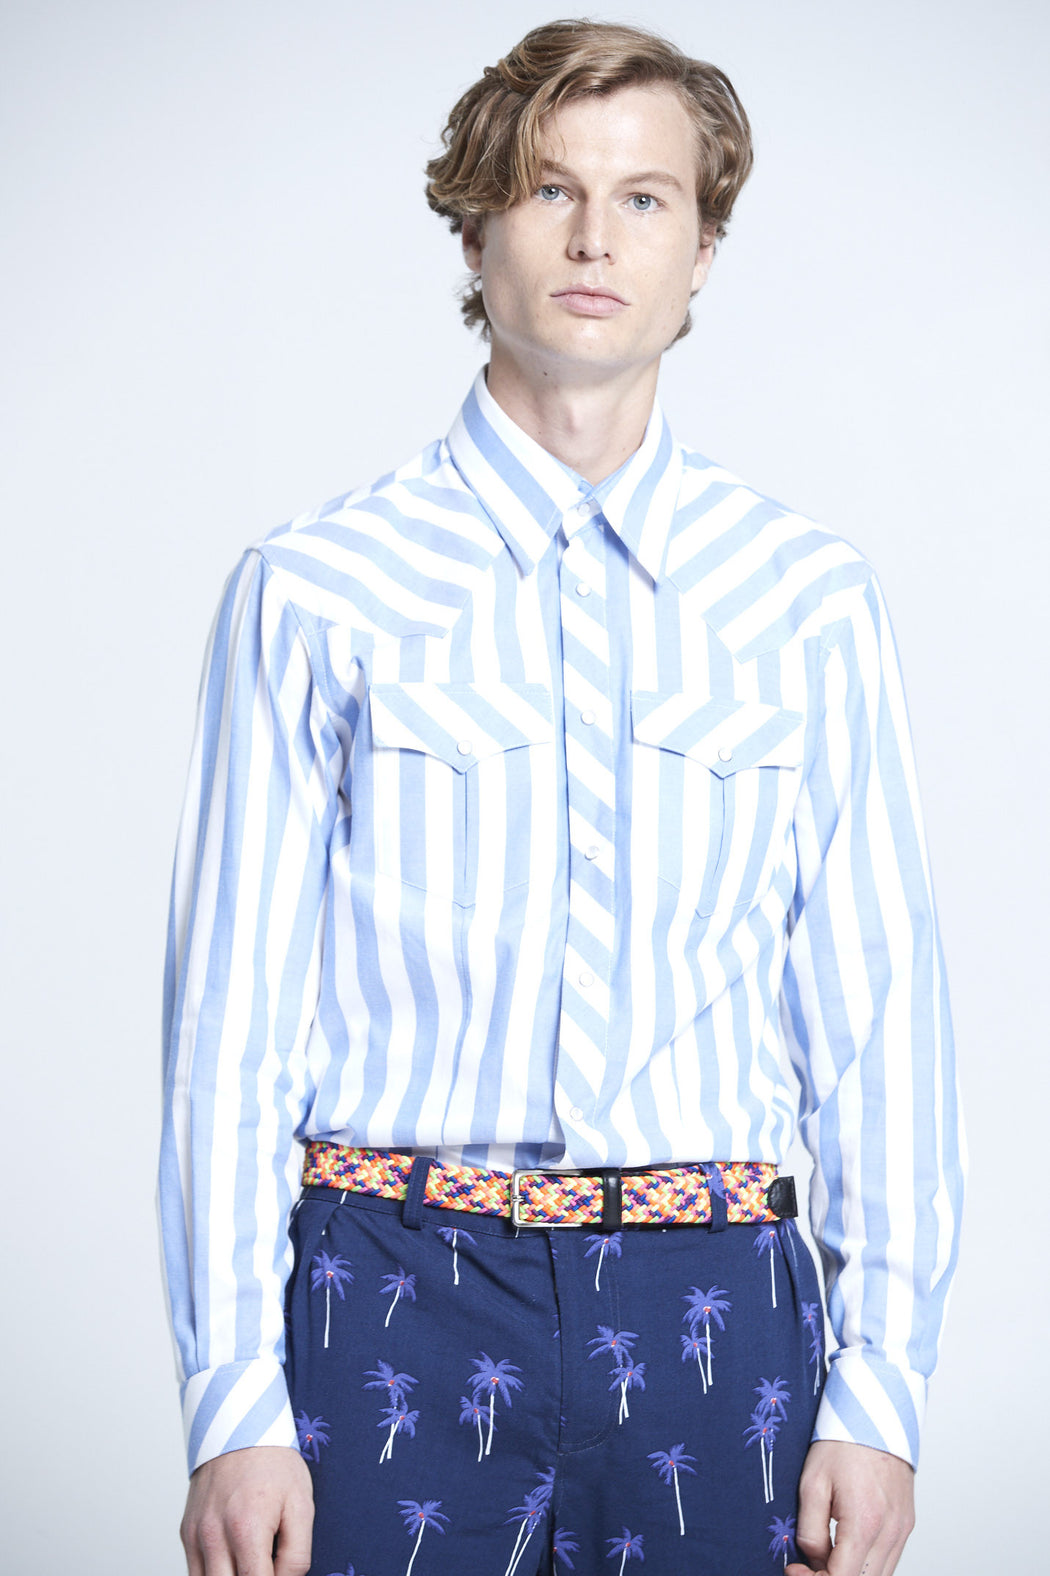 WORLDman 4202 Garibaldi Cowboy Shirt Blue Stripe